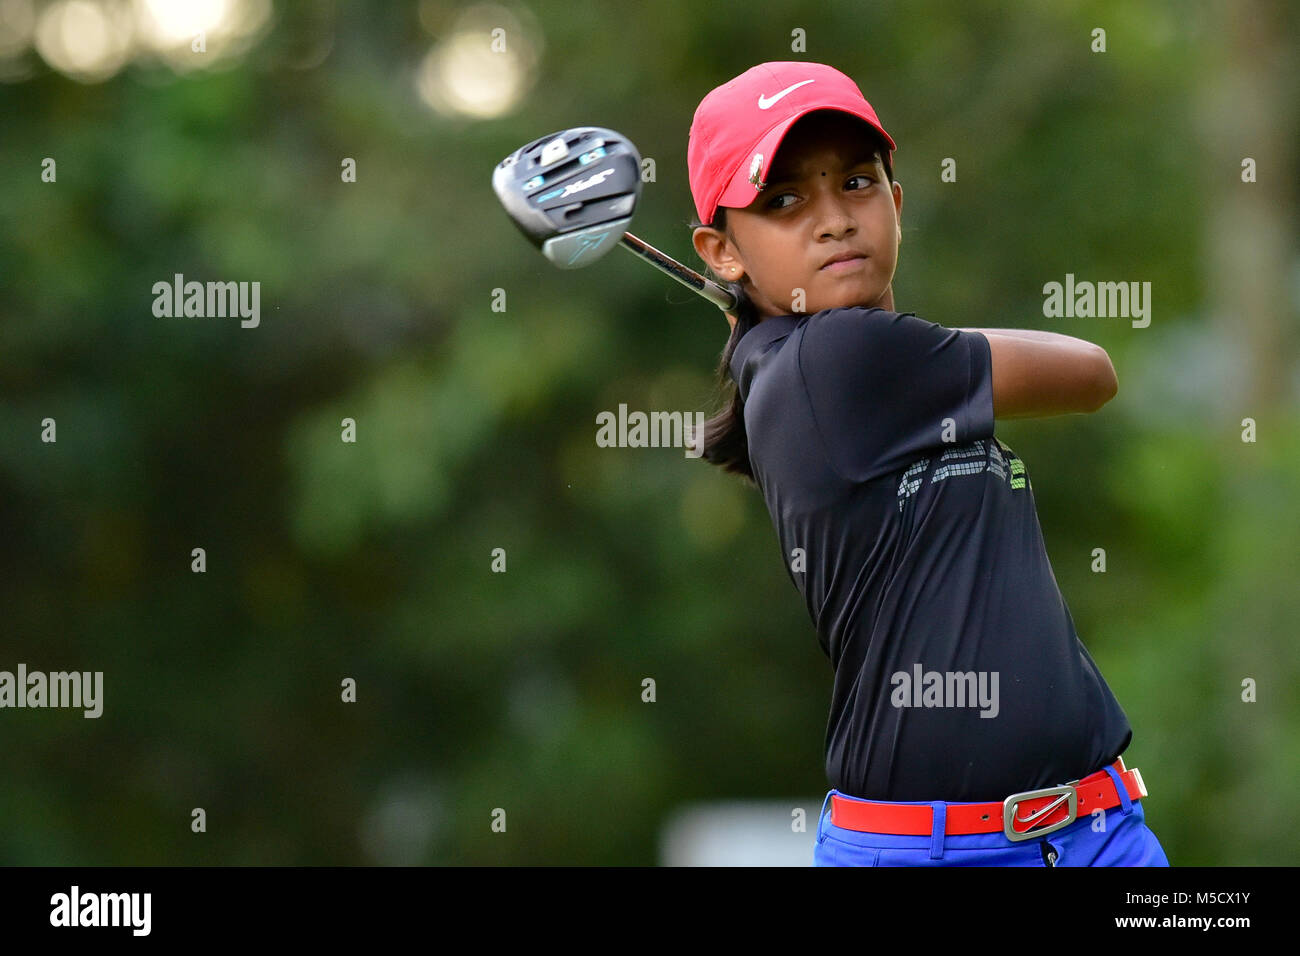 Danau, UKM Bangi - FEBRUARY 10: Kaathiyayani Gunasegar takes her tee shot on the 11th hole during Round One of the - Stock Image